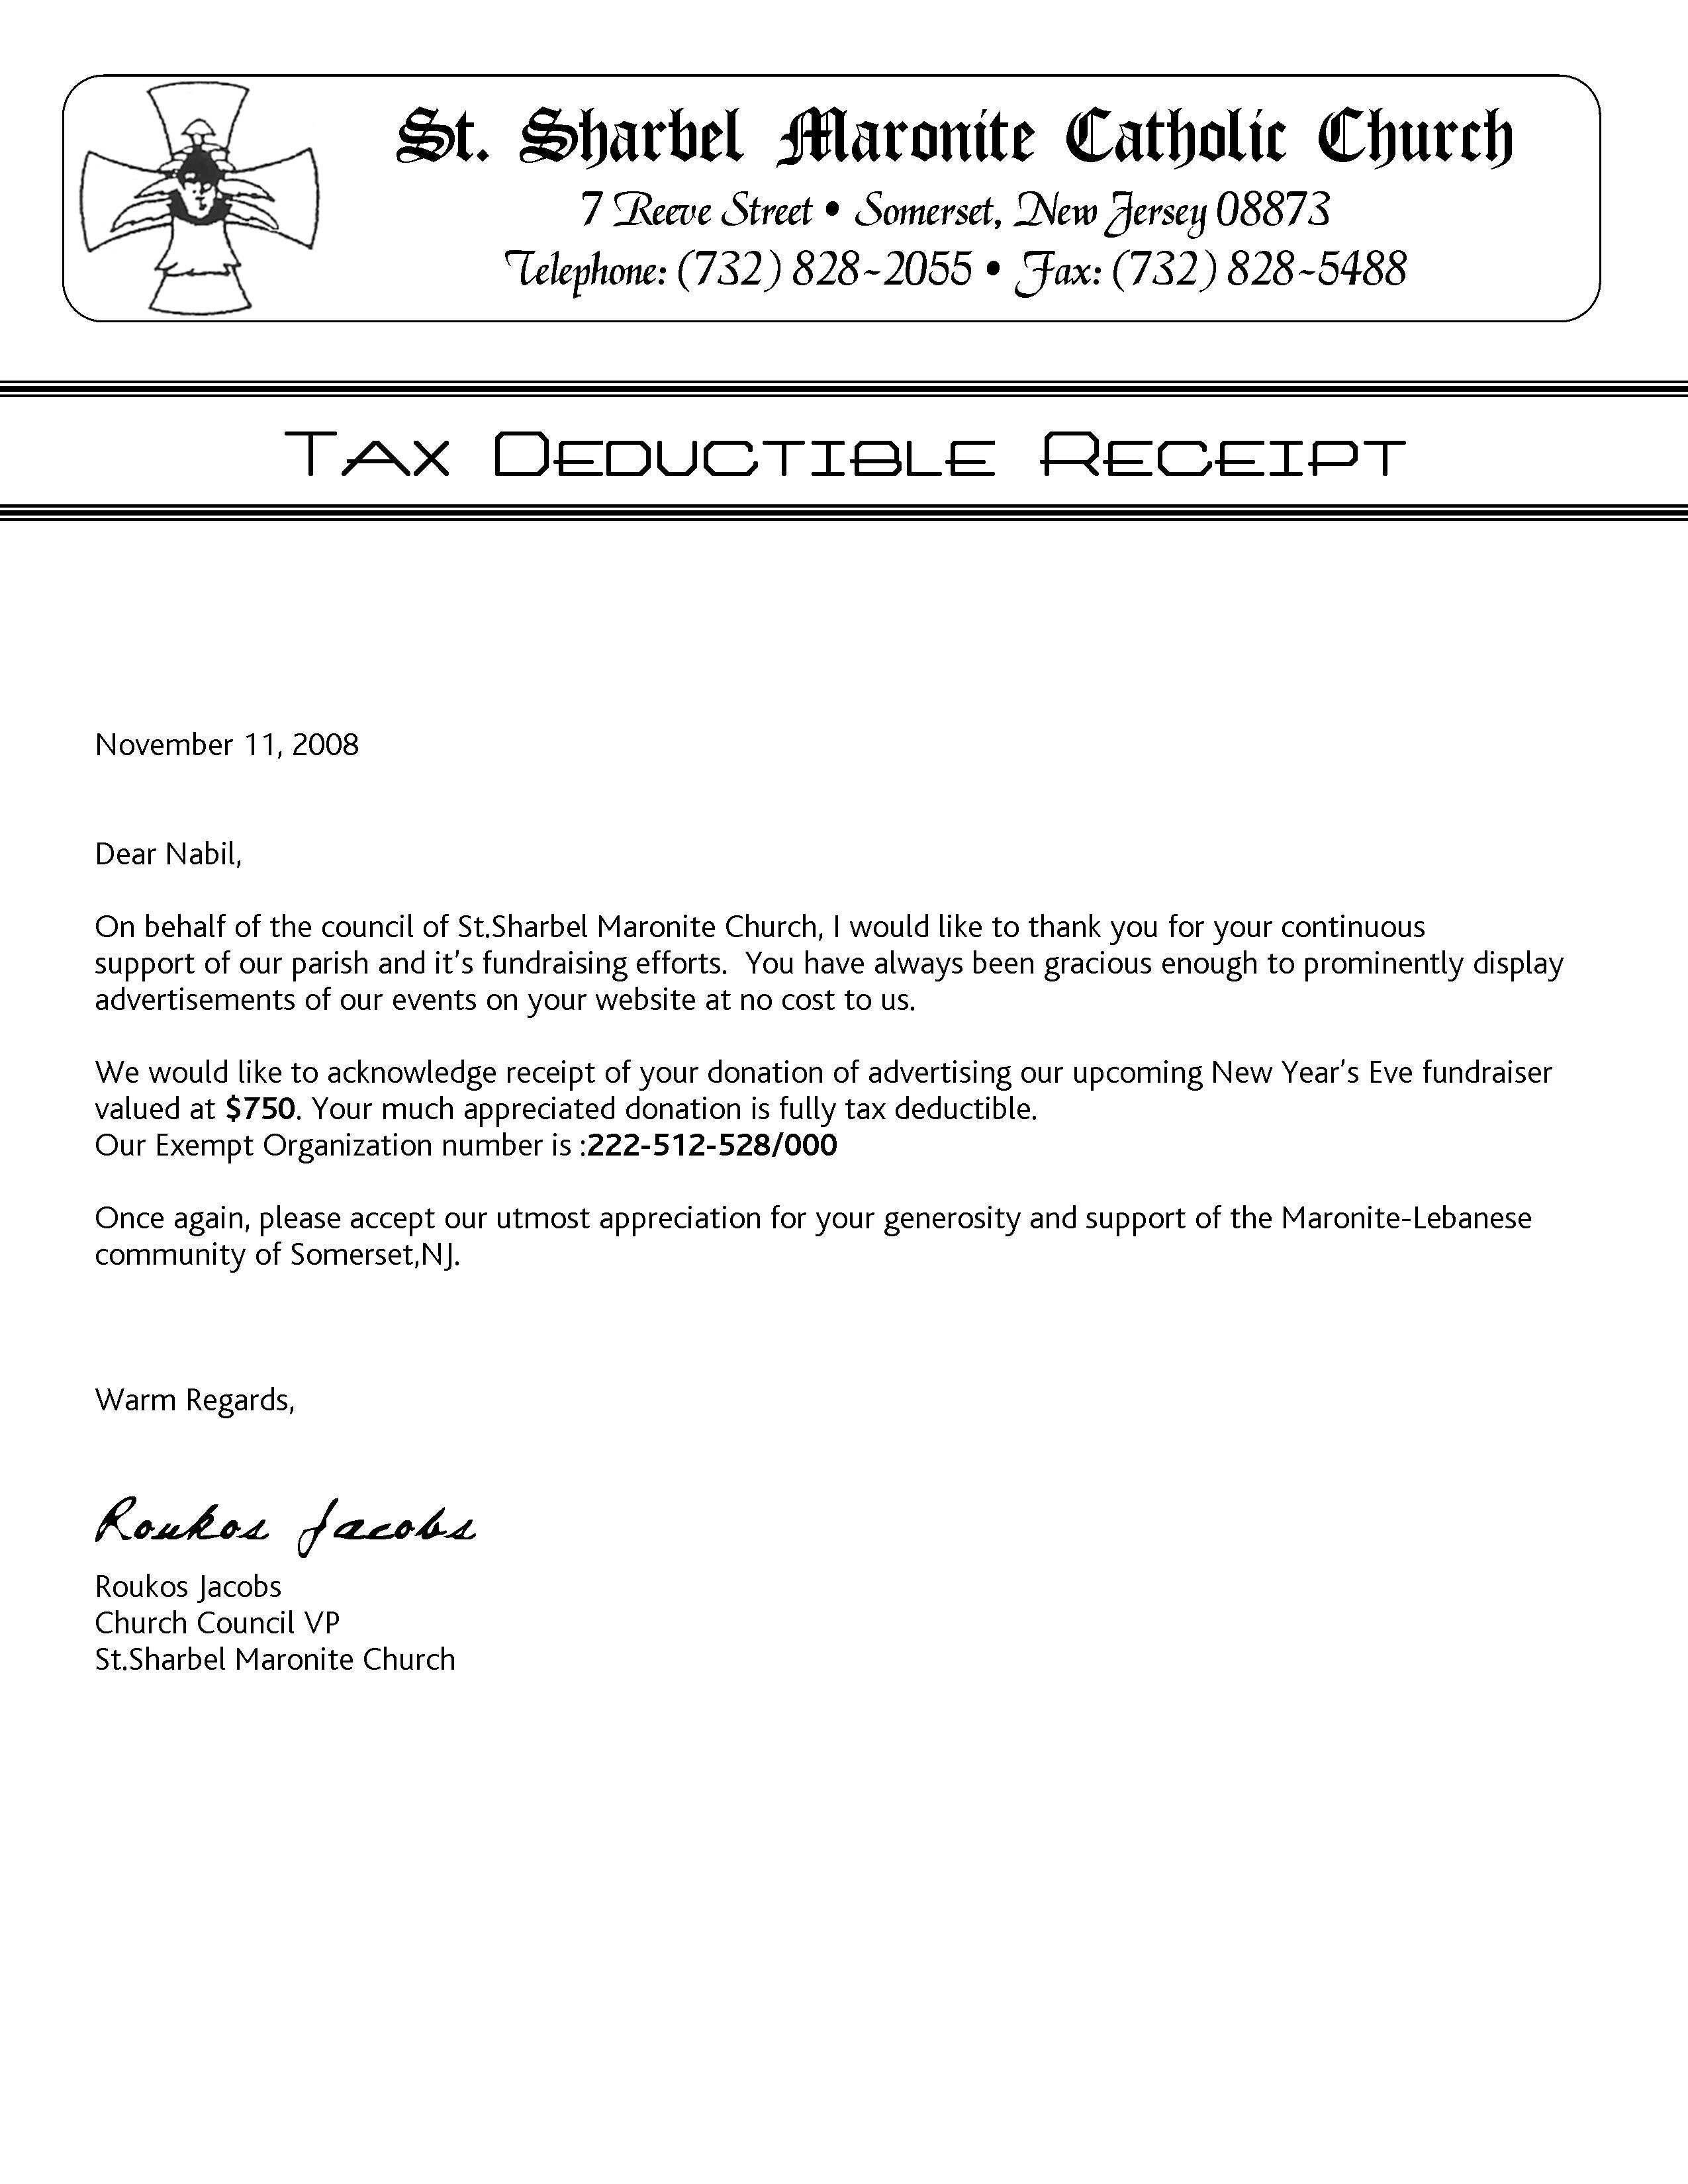 church donation letter template example-Church Donation Letter Template Fresh Church Donation Form Template As Well As Index Cdn 12 2006 721 13-l